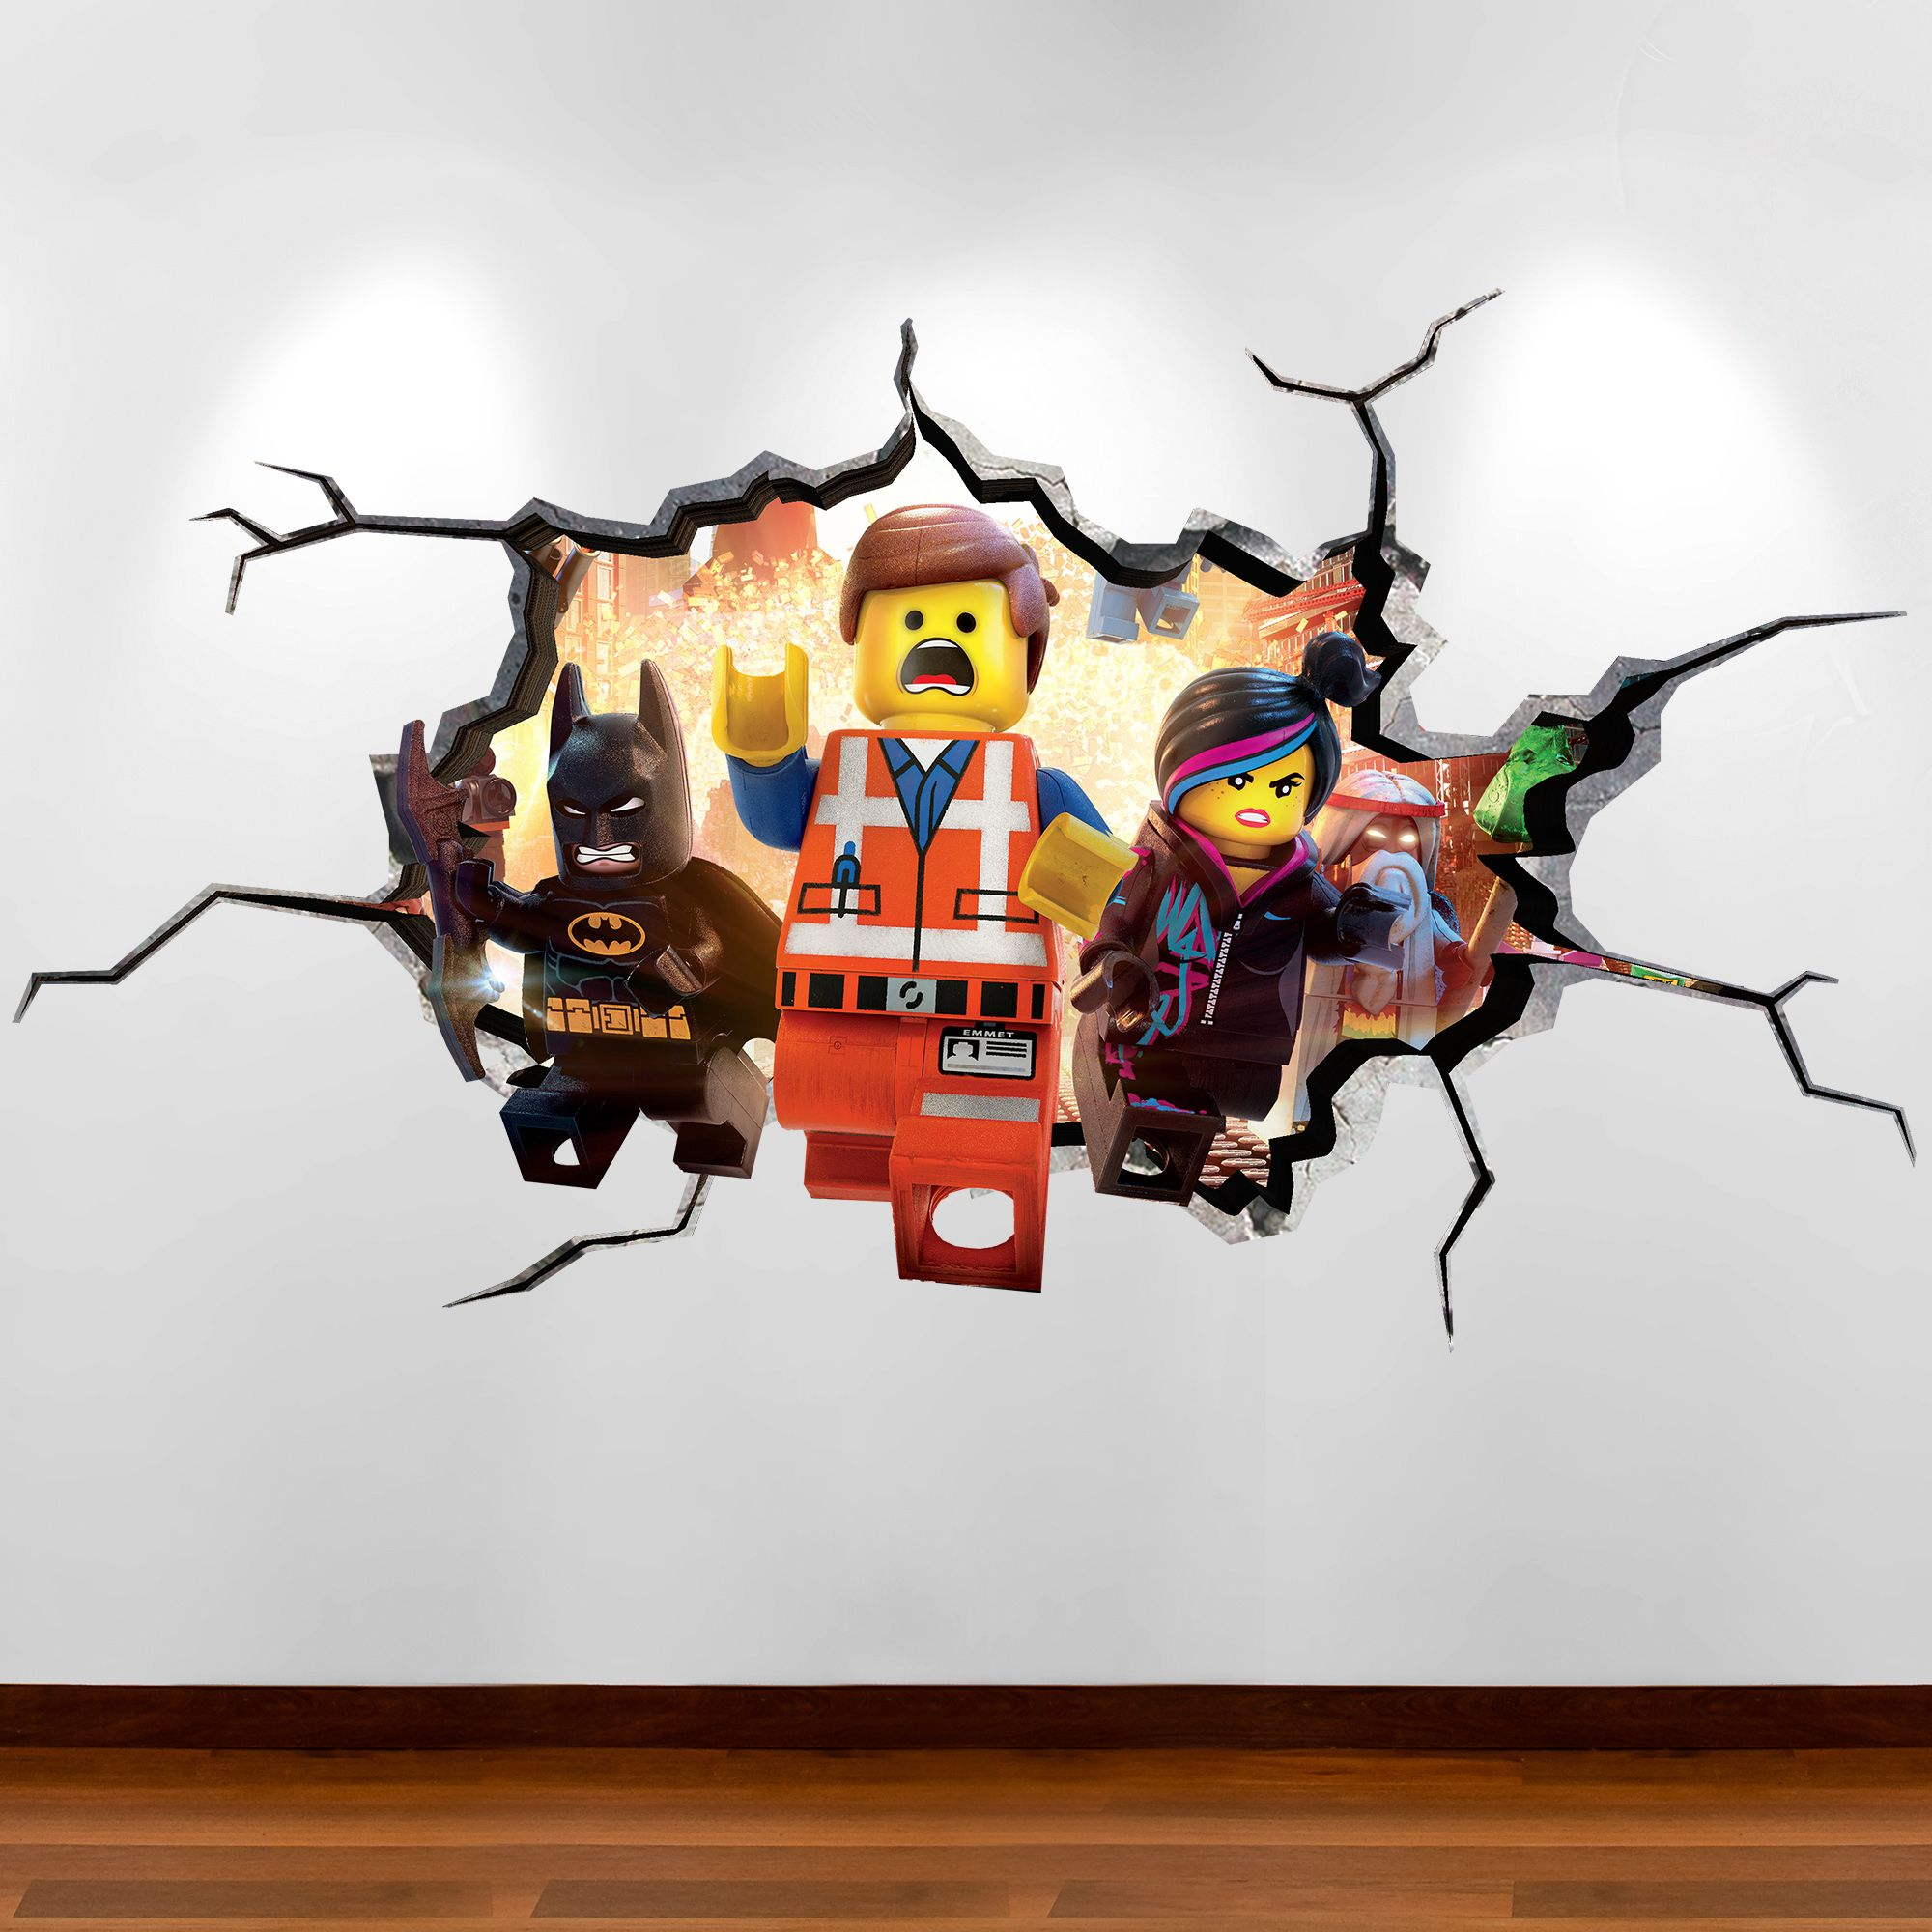 lego movie cracked wall explosion full colour wall art sticker decal